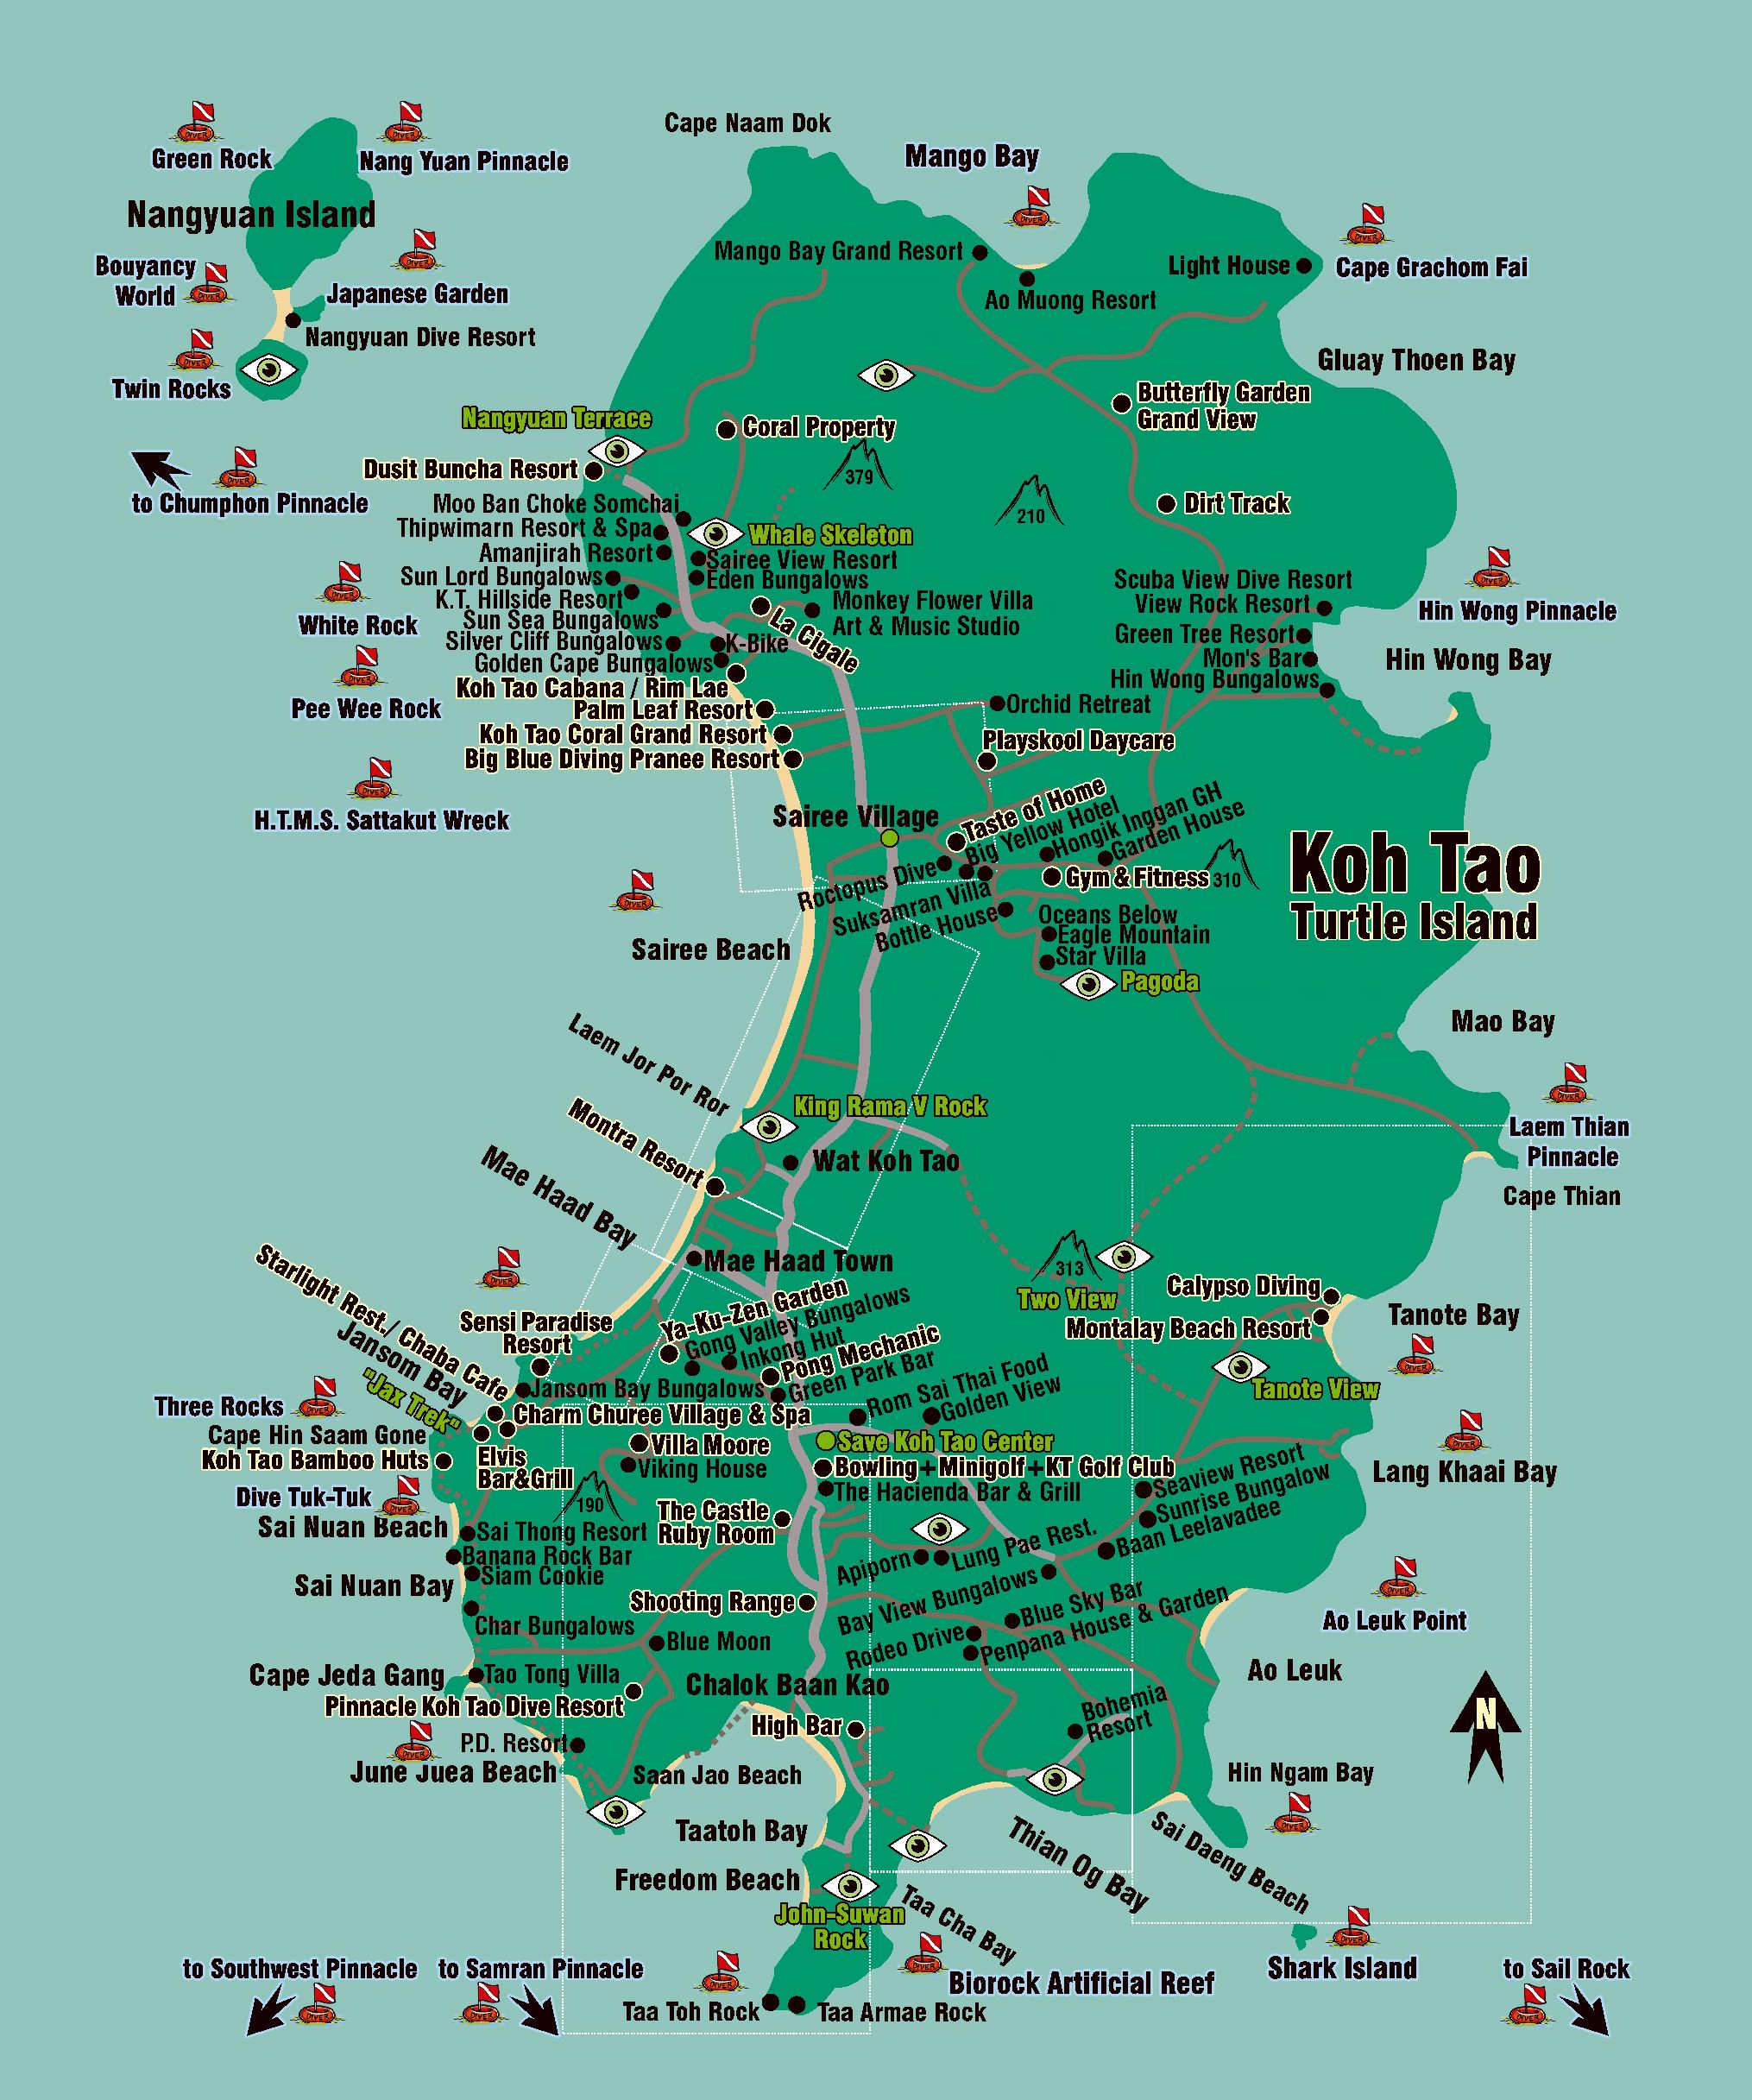 Large Ko Tao Island Maps For Free Download And Print High